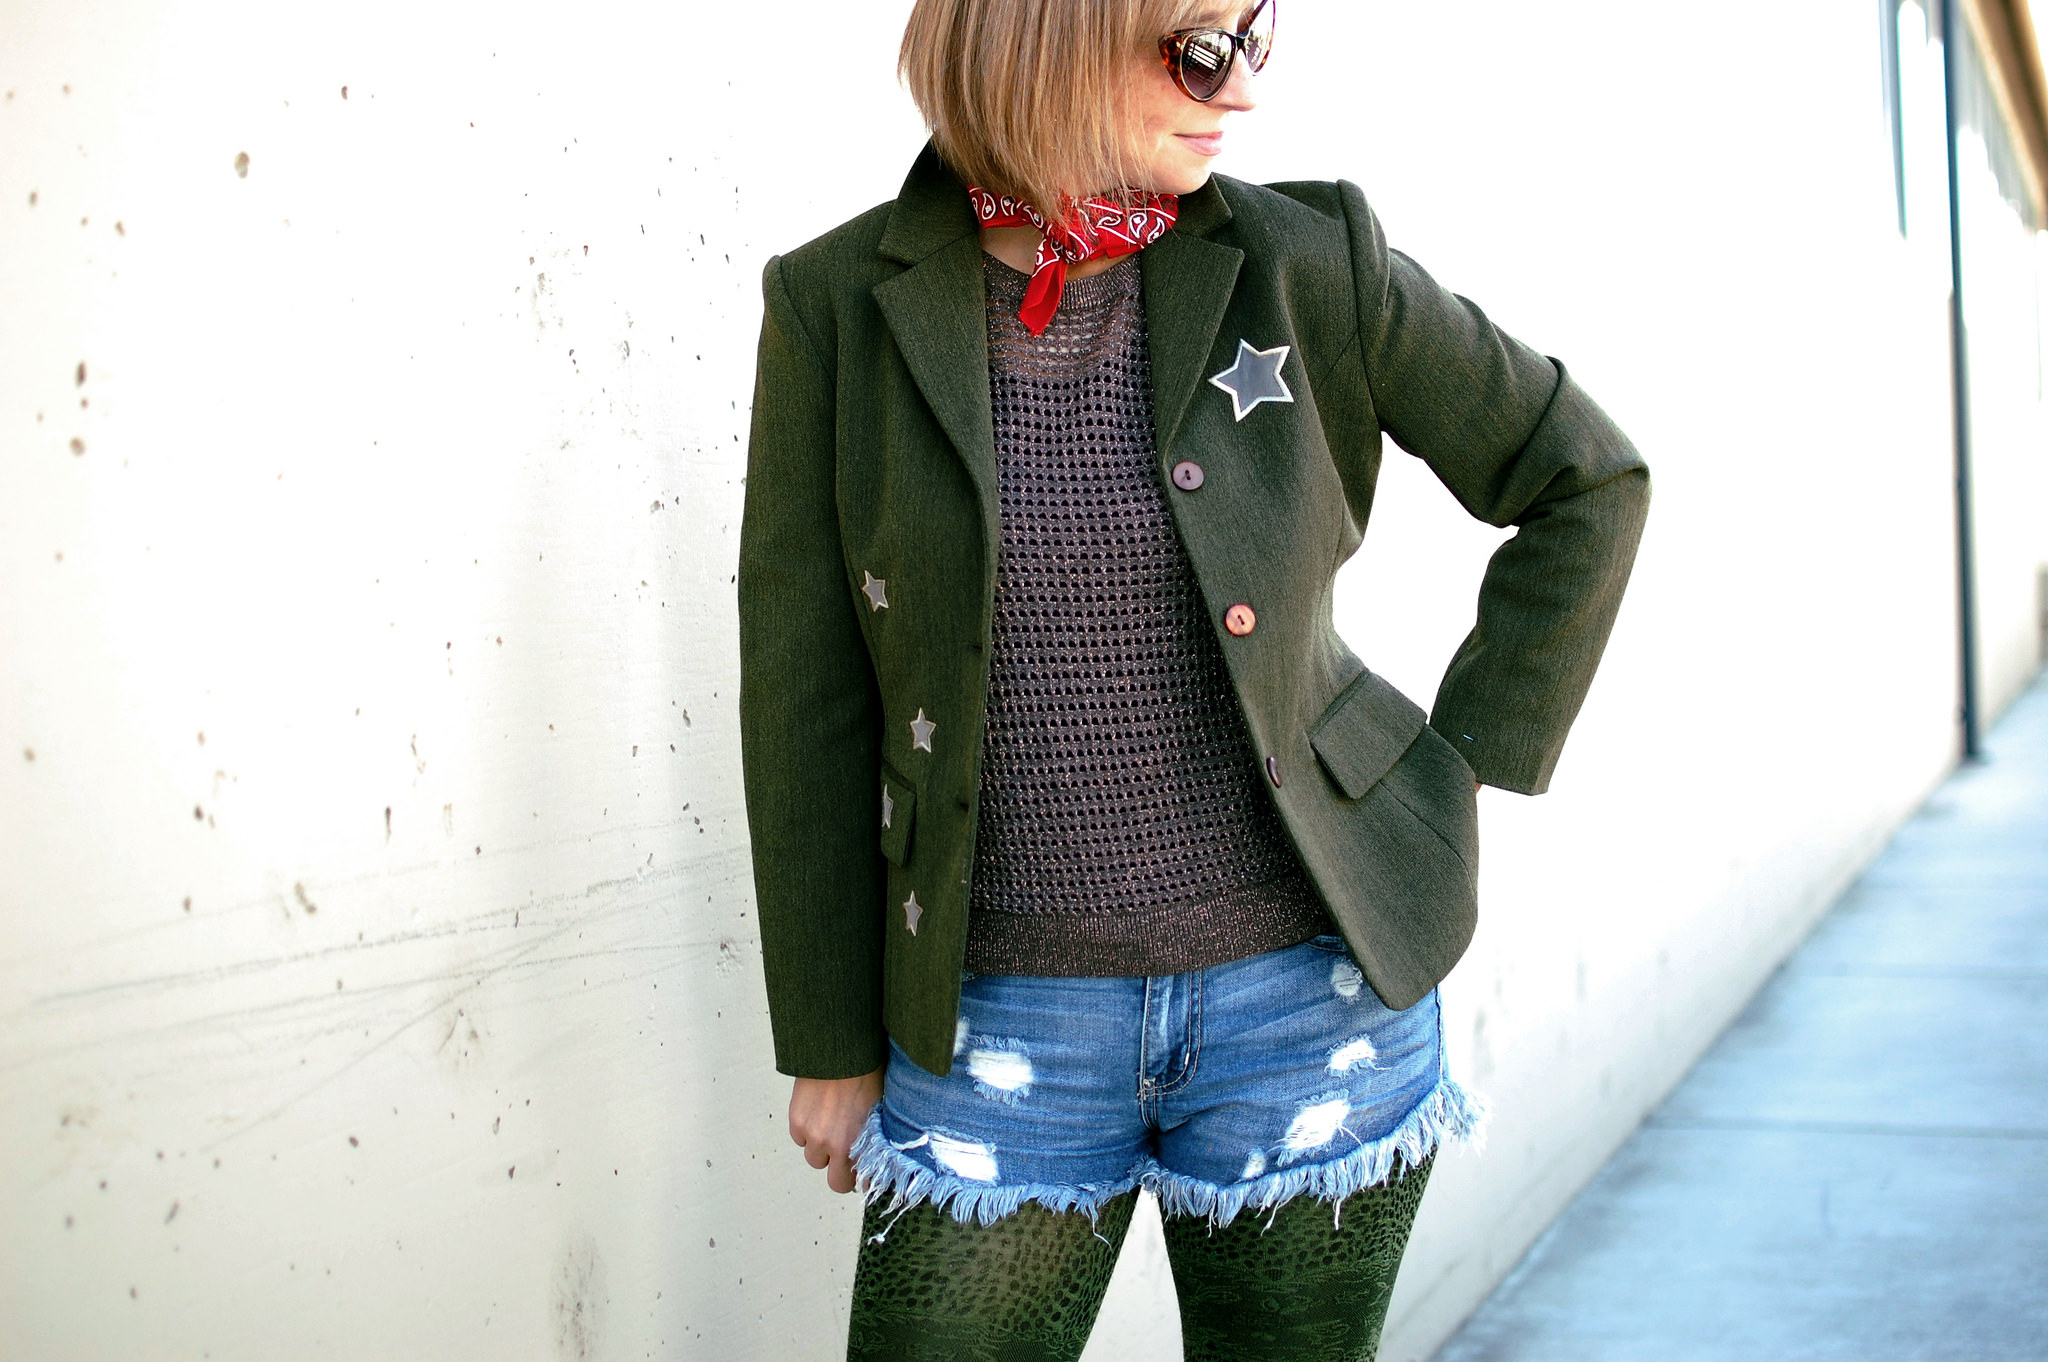 thrift bandana denim shorts tights military inspired star applique daily outfit blog whatiwore2day ootd